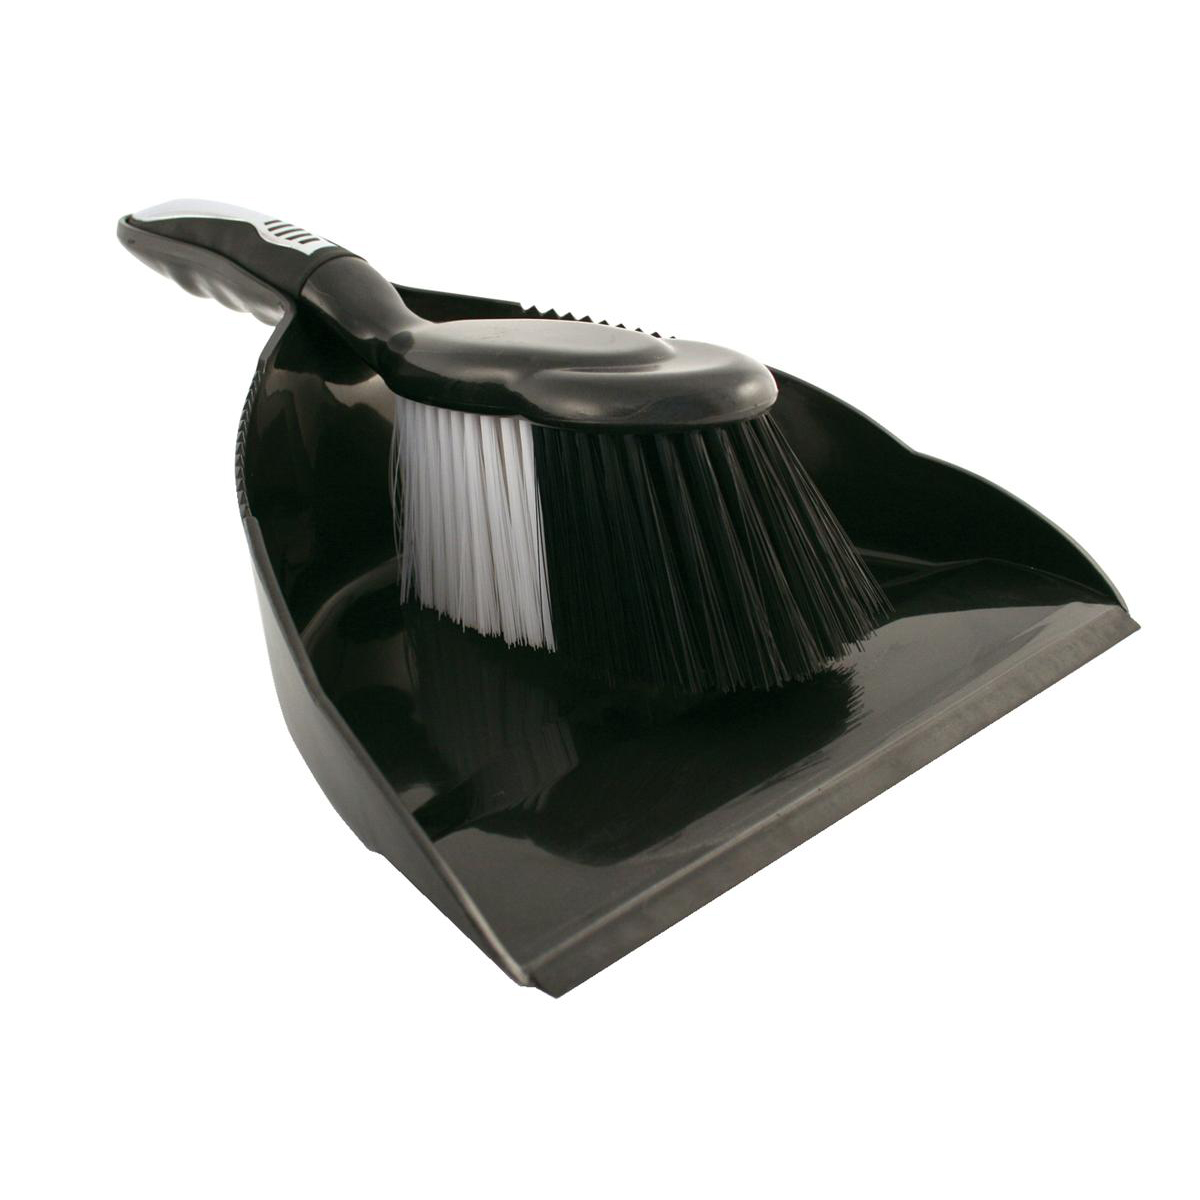 Mops & Buckets Bentley Dustpan and Brush Set Black and Chrome Ref HL8001/G SET